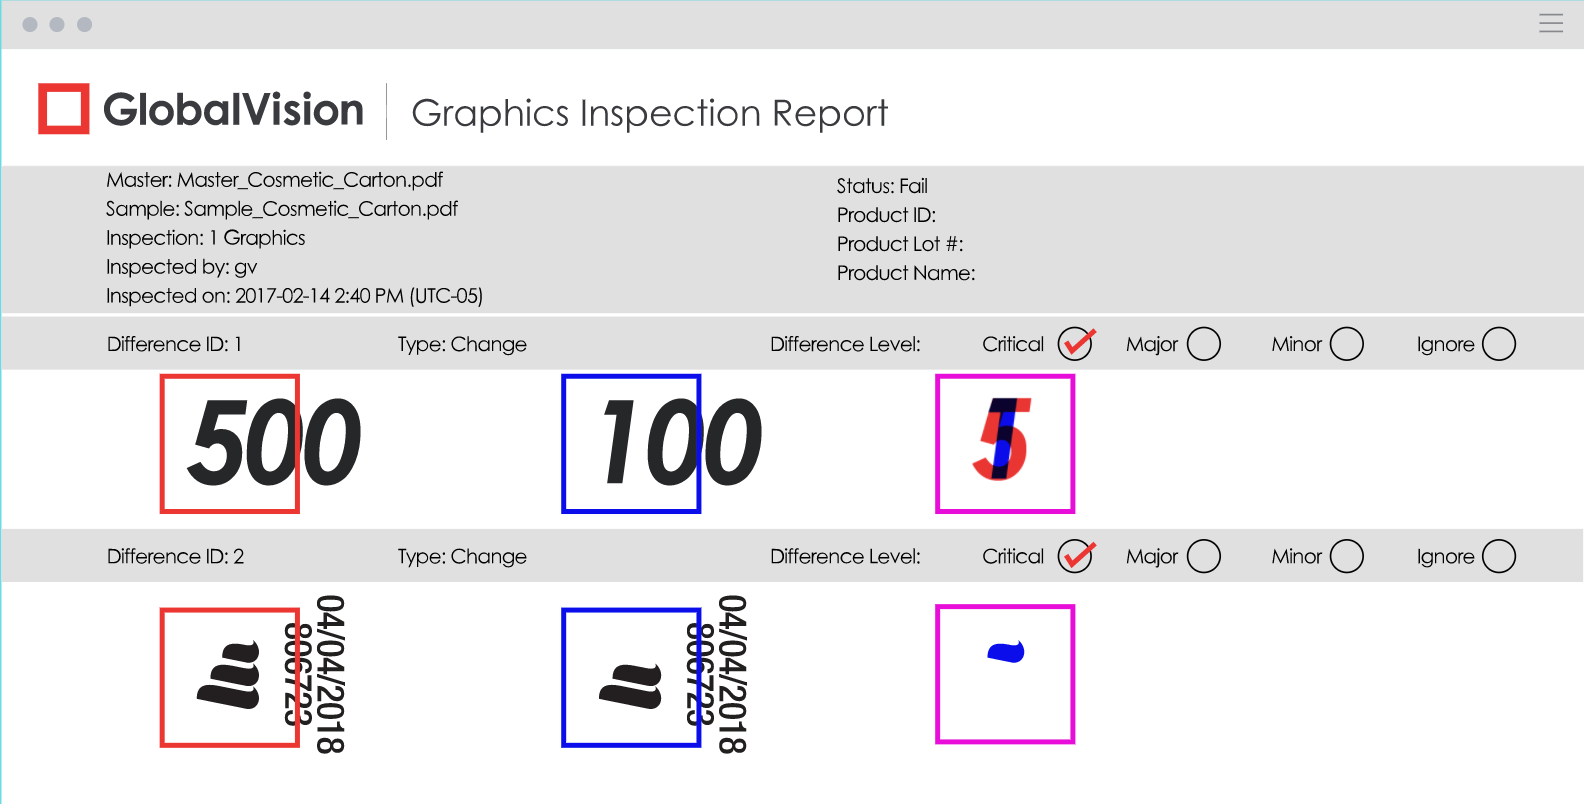 Graphics inspection report